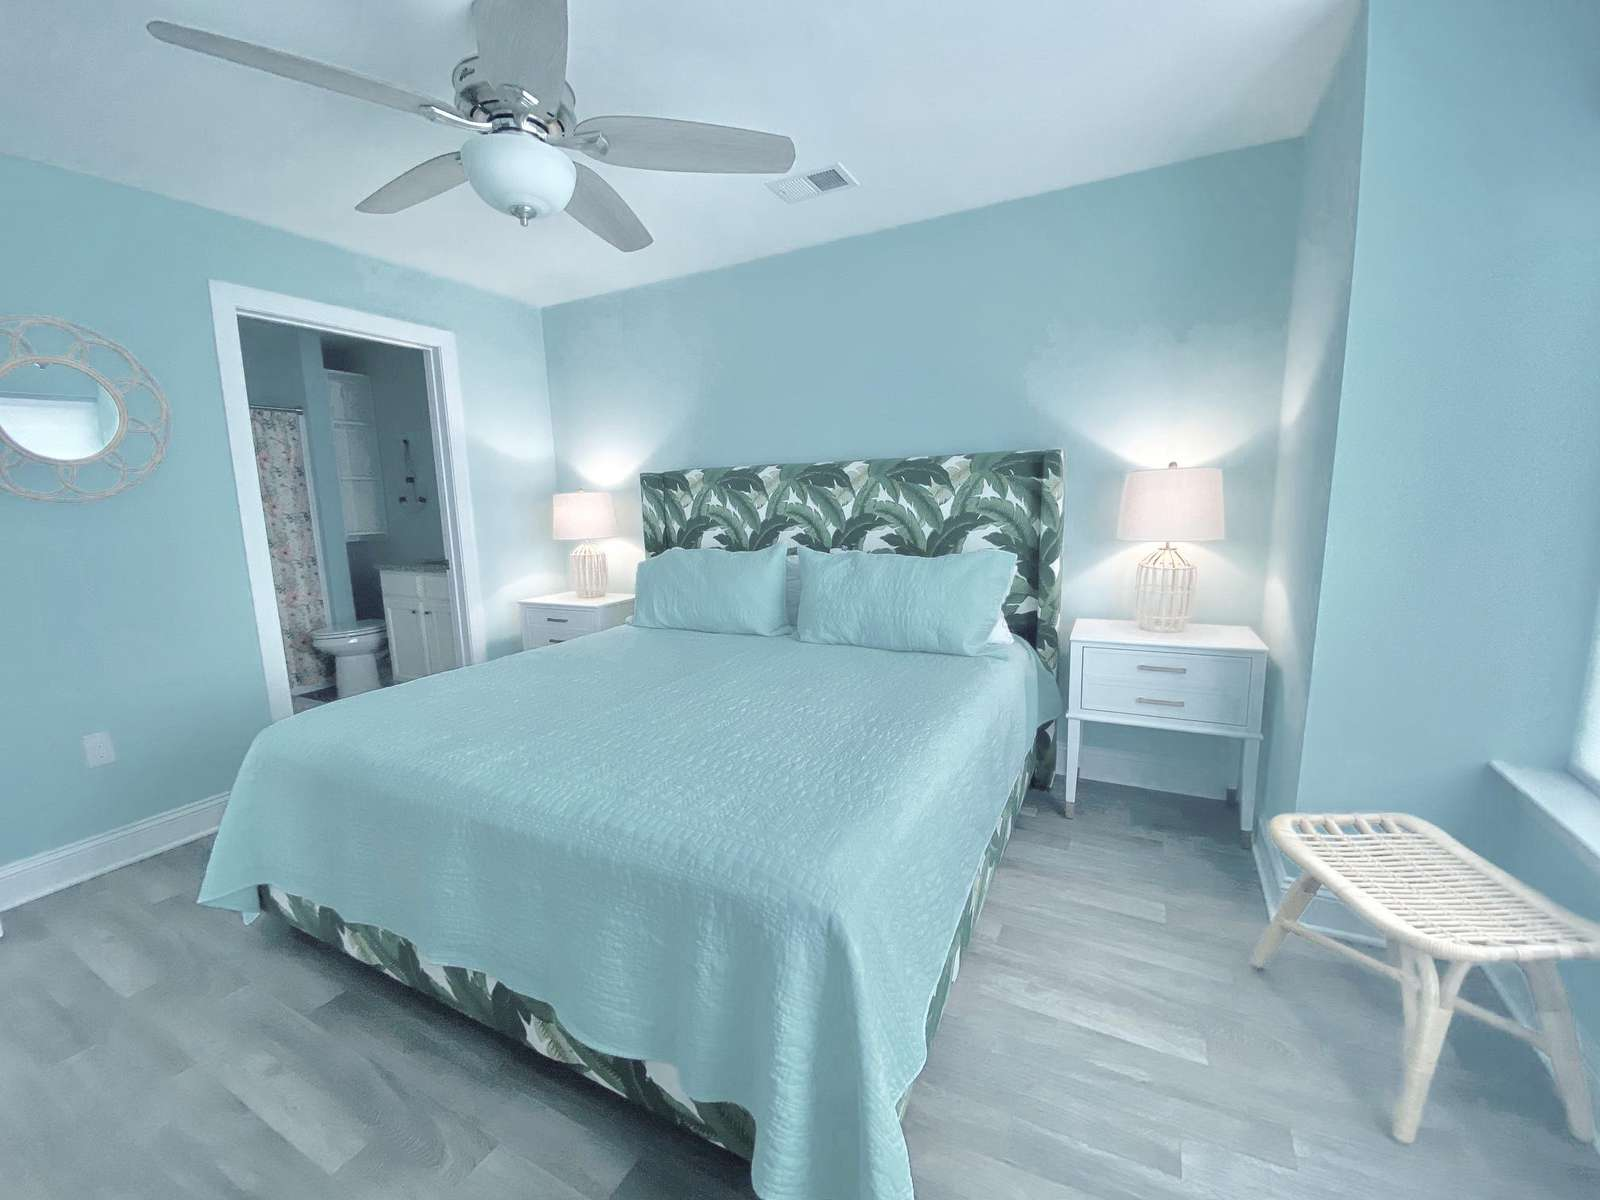 Master bedroom with private bath and tub/shower combo